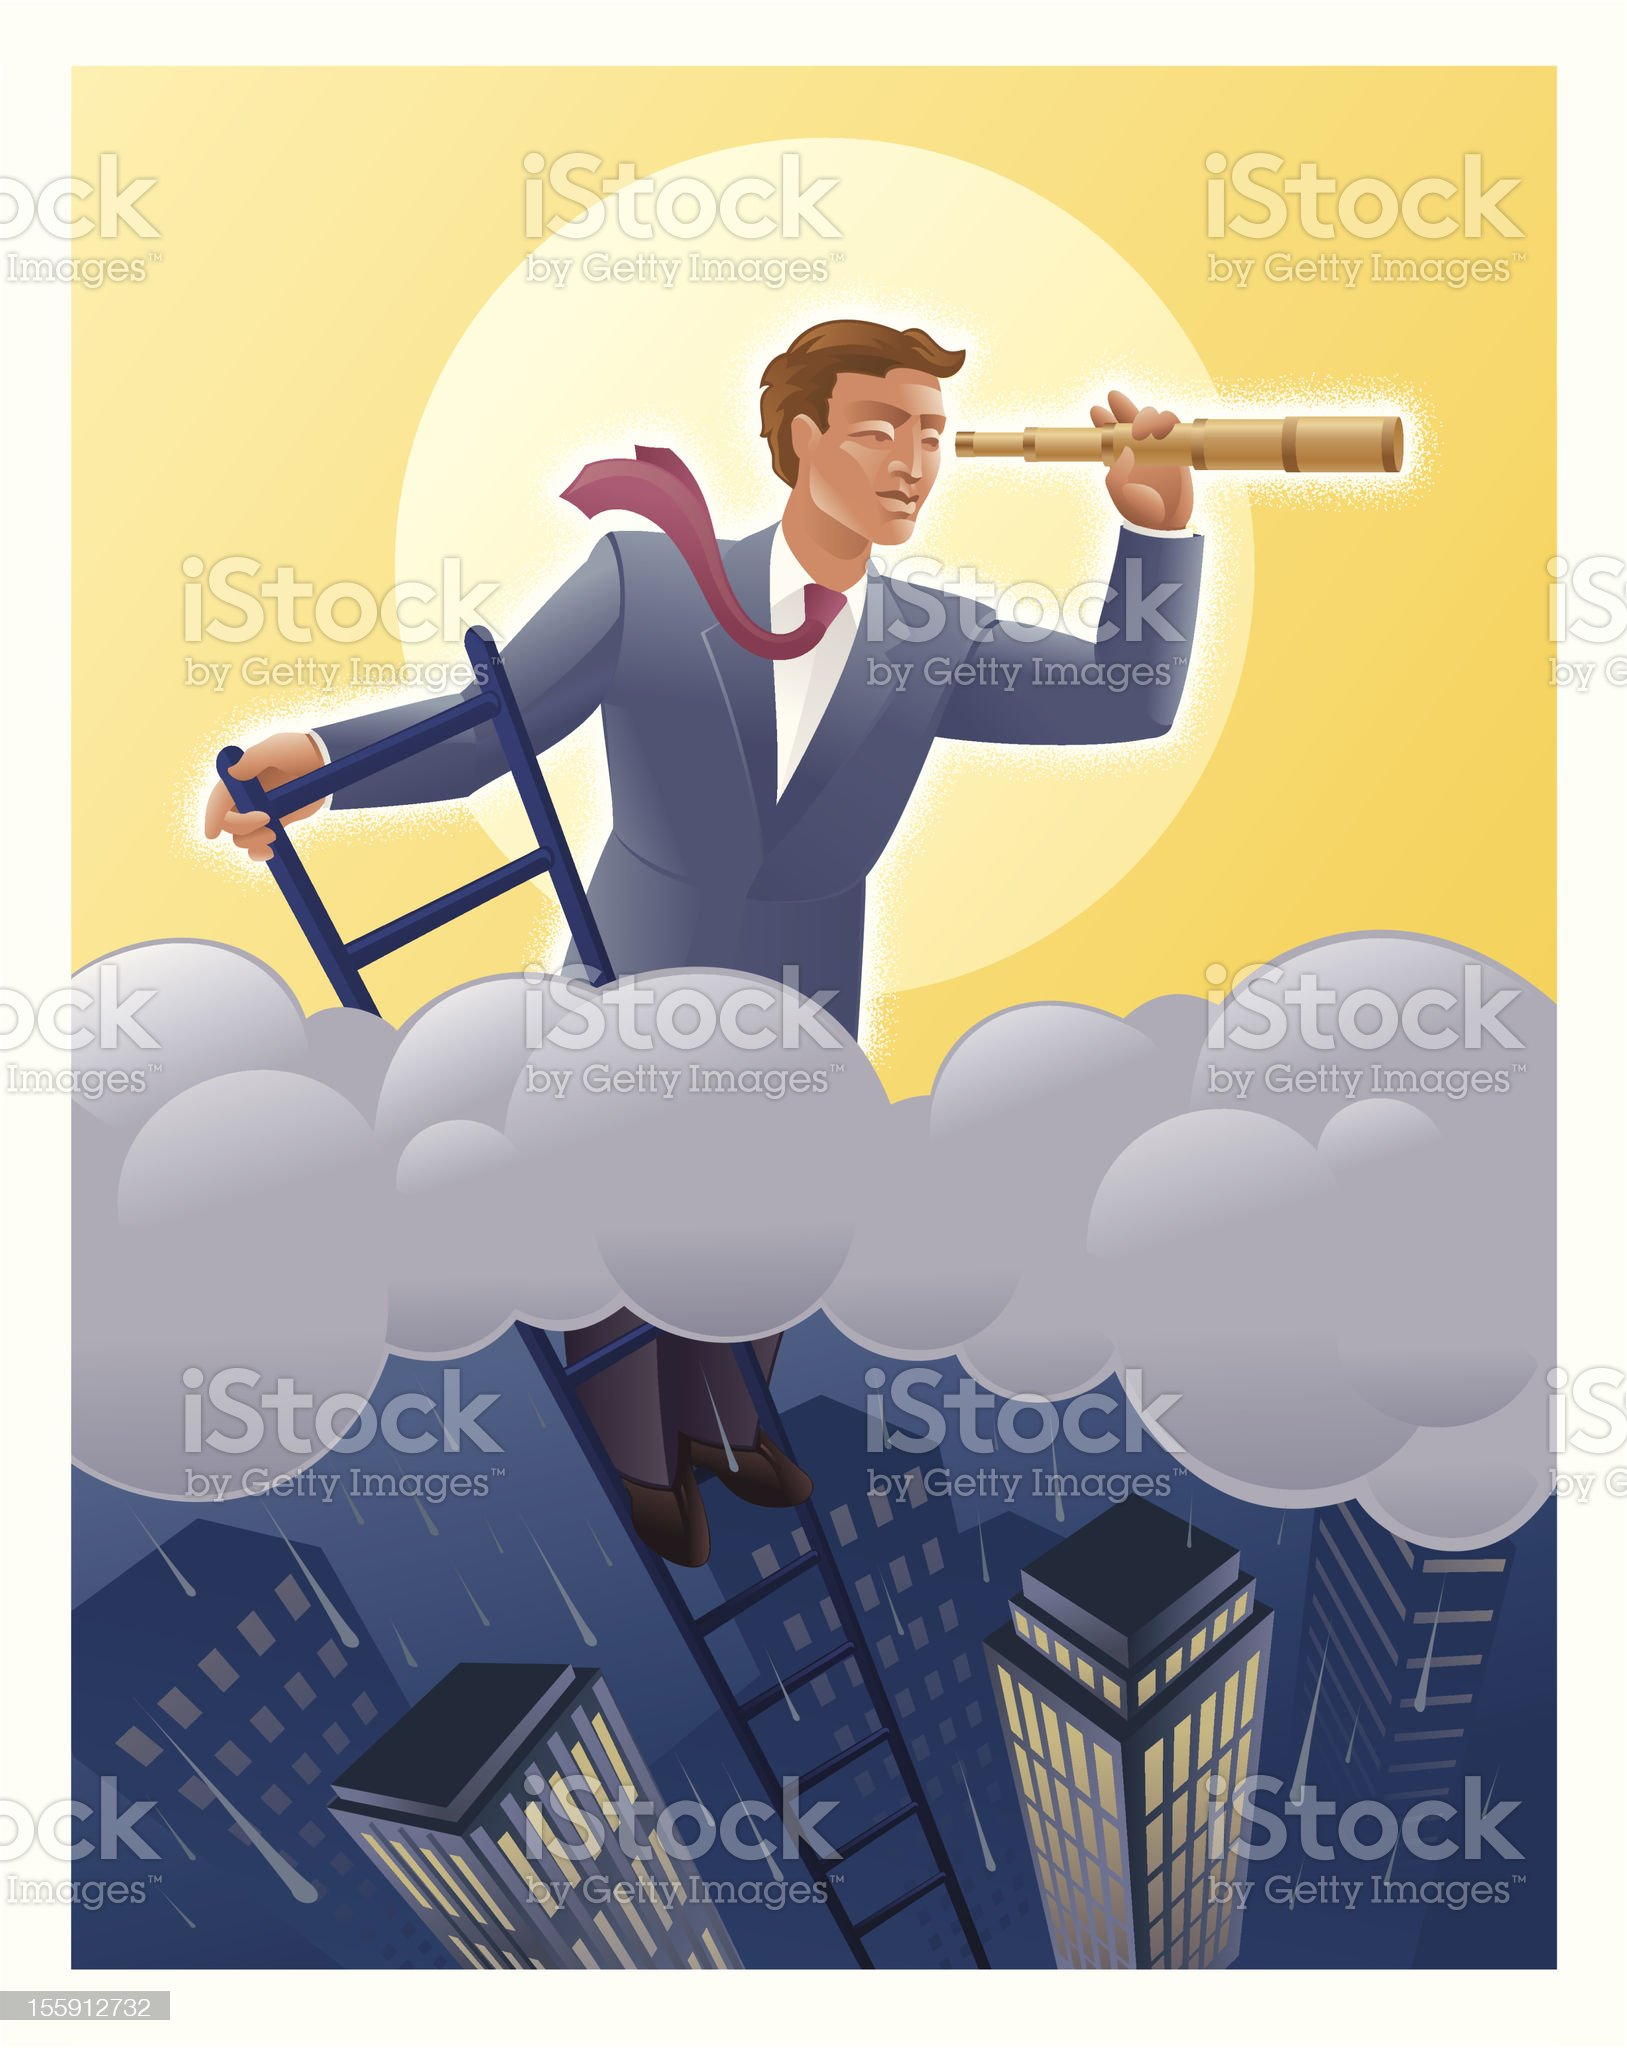 Businessmen on Ladder Looking above the Storm royalty-free stock vector art